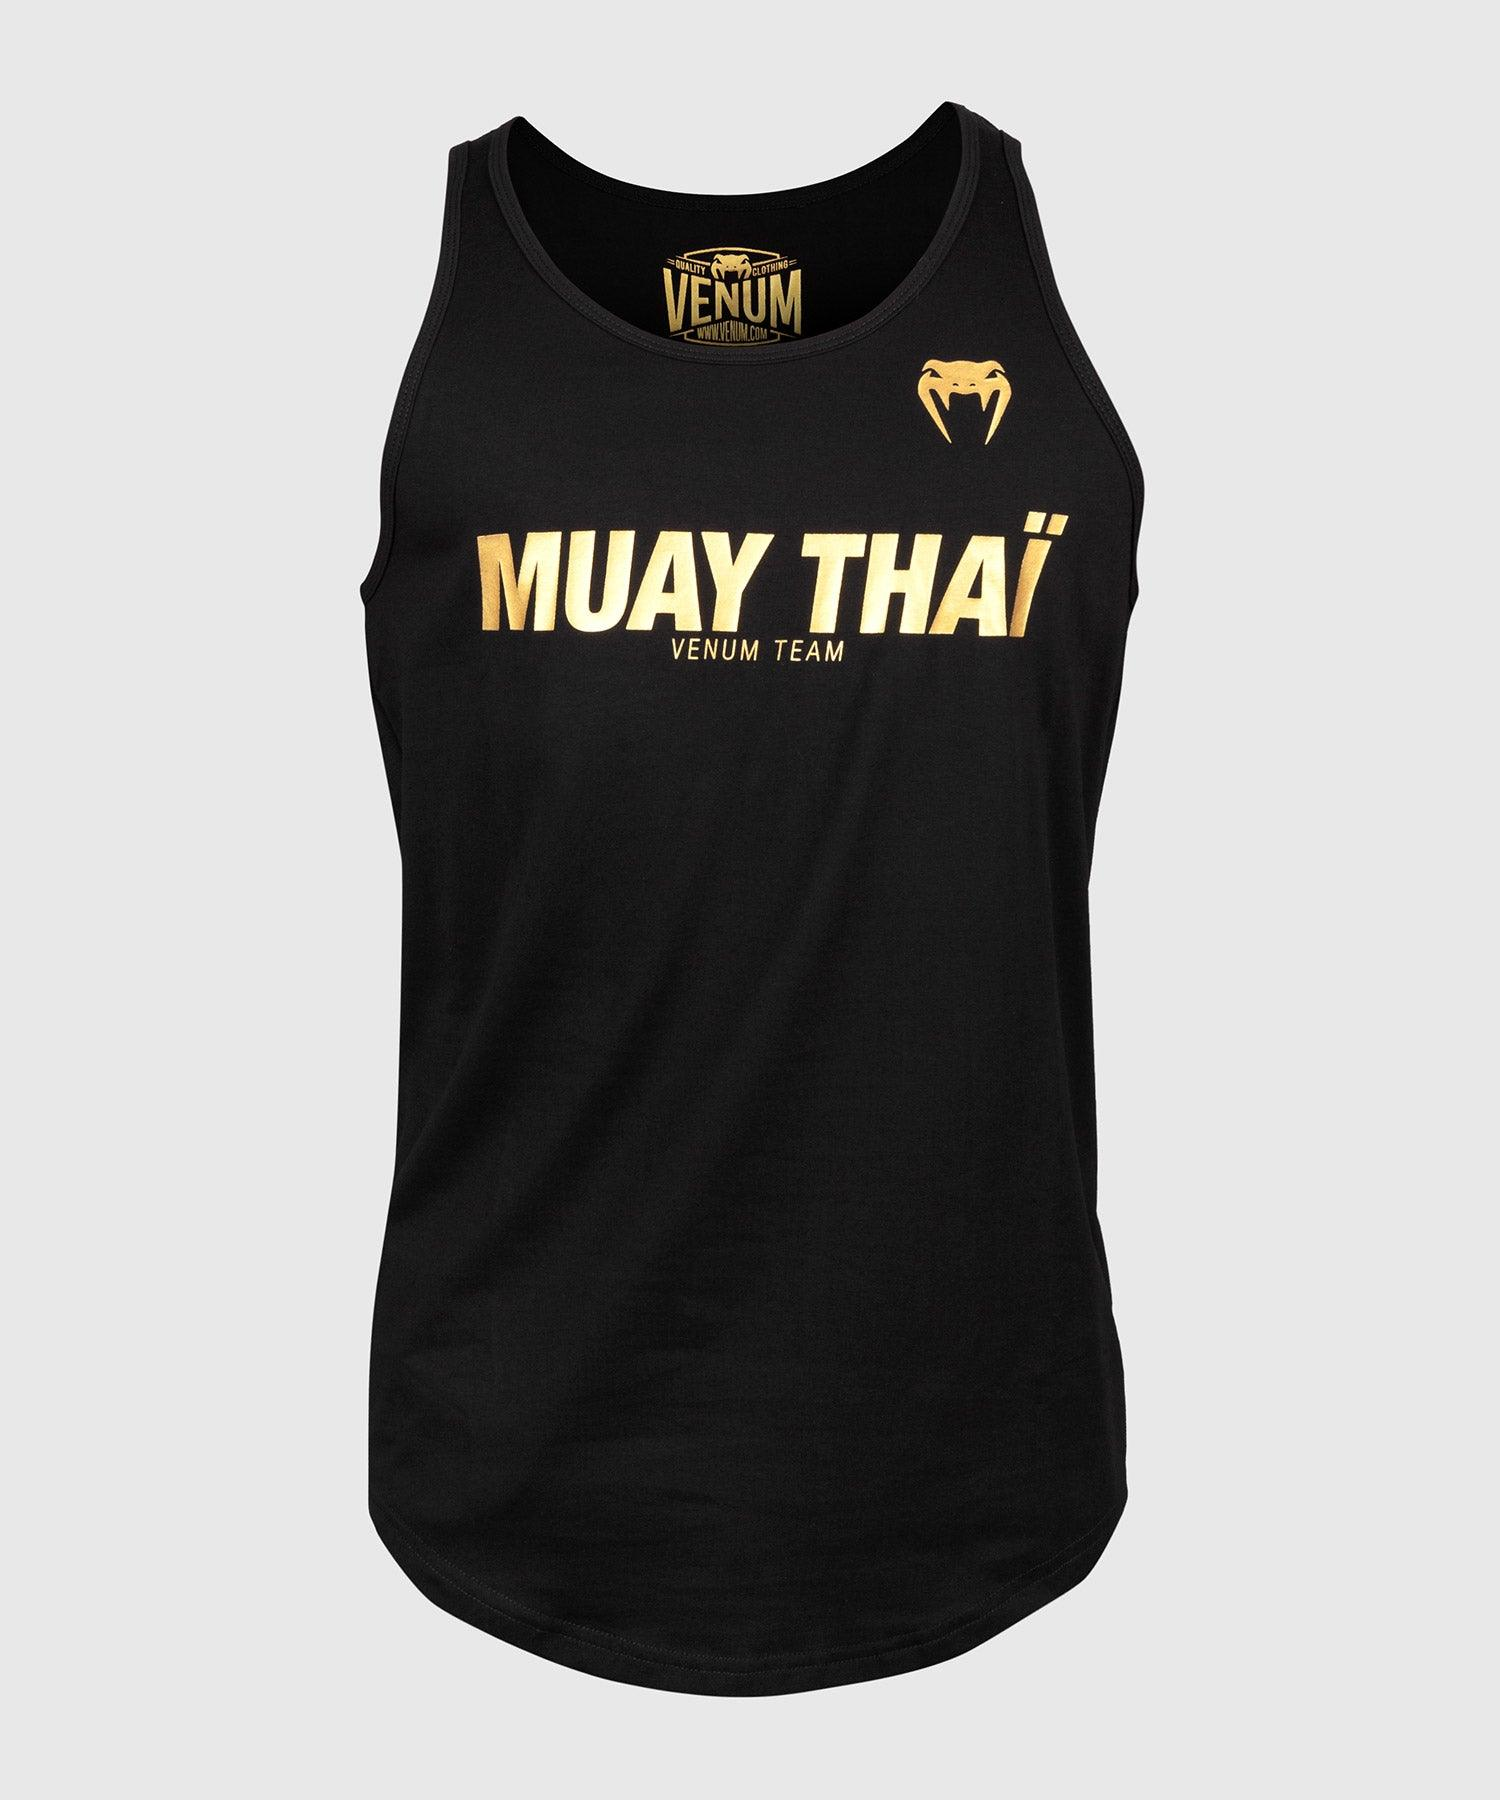 Venum Muay Thai VT Tank Top - Black/Gold picture 1